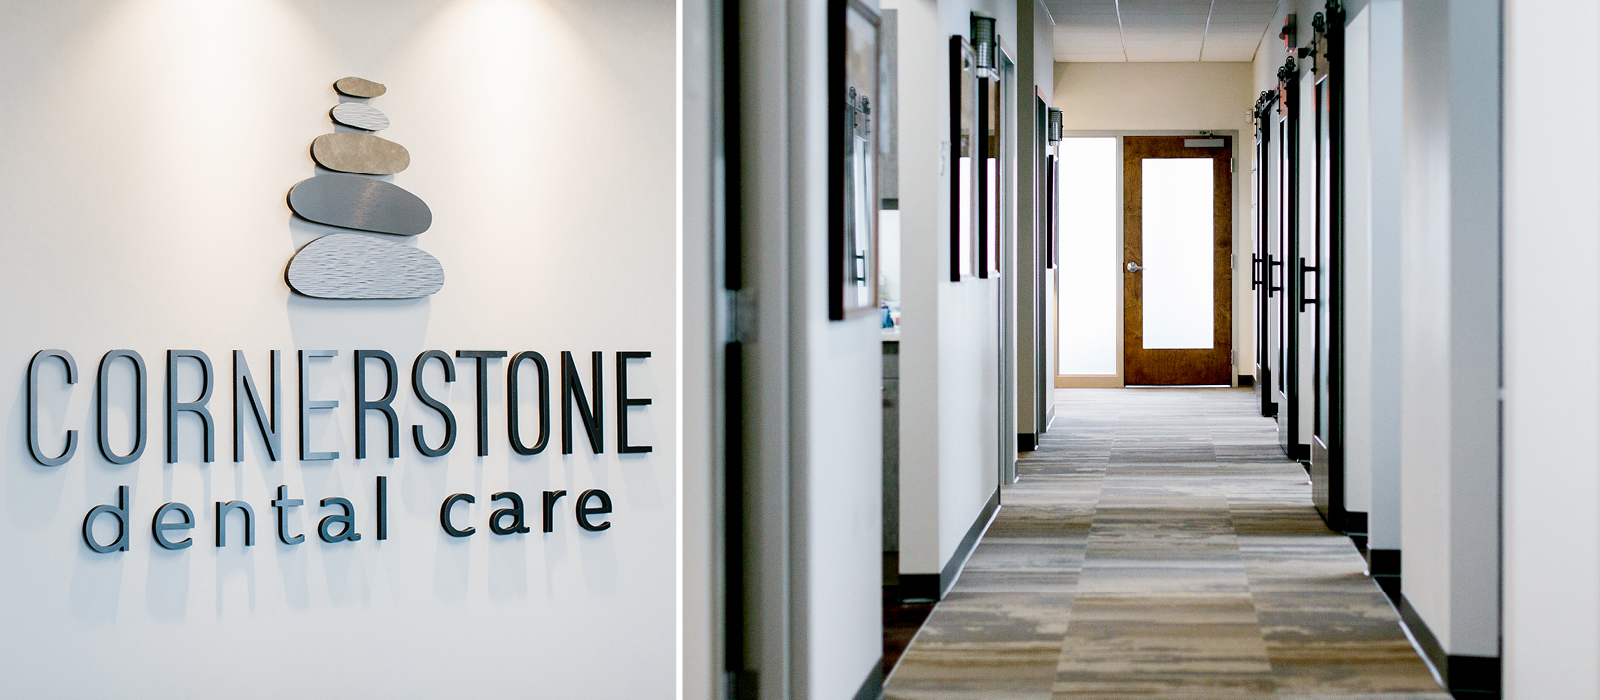 Cornerstone Dental Care hallway